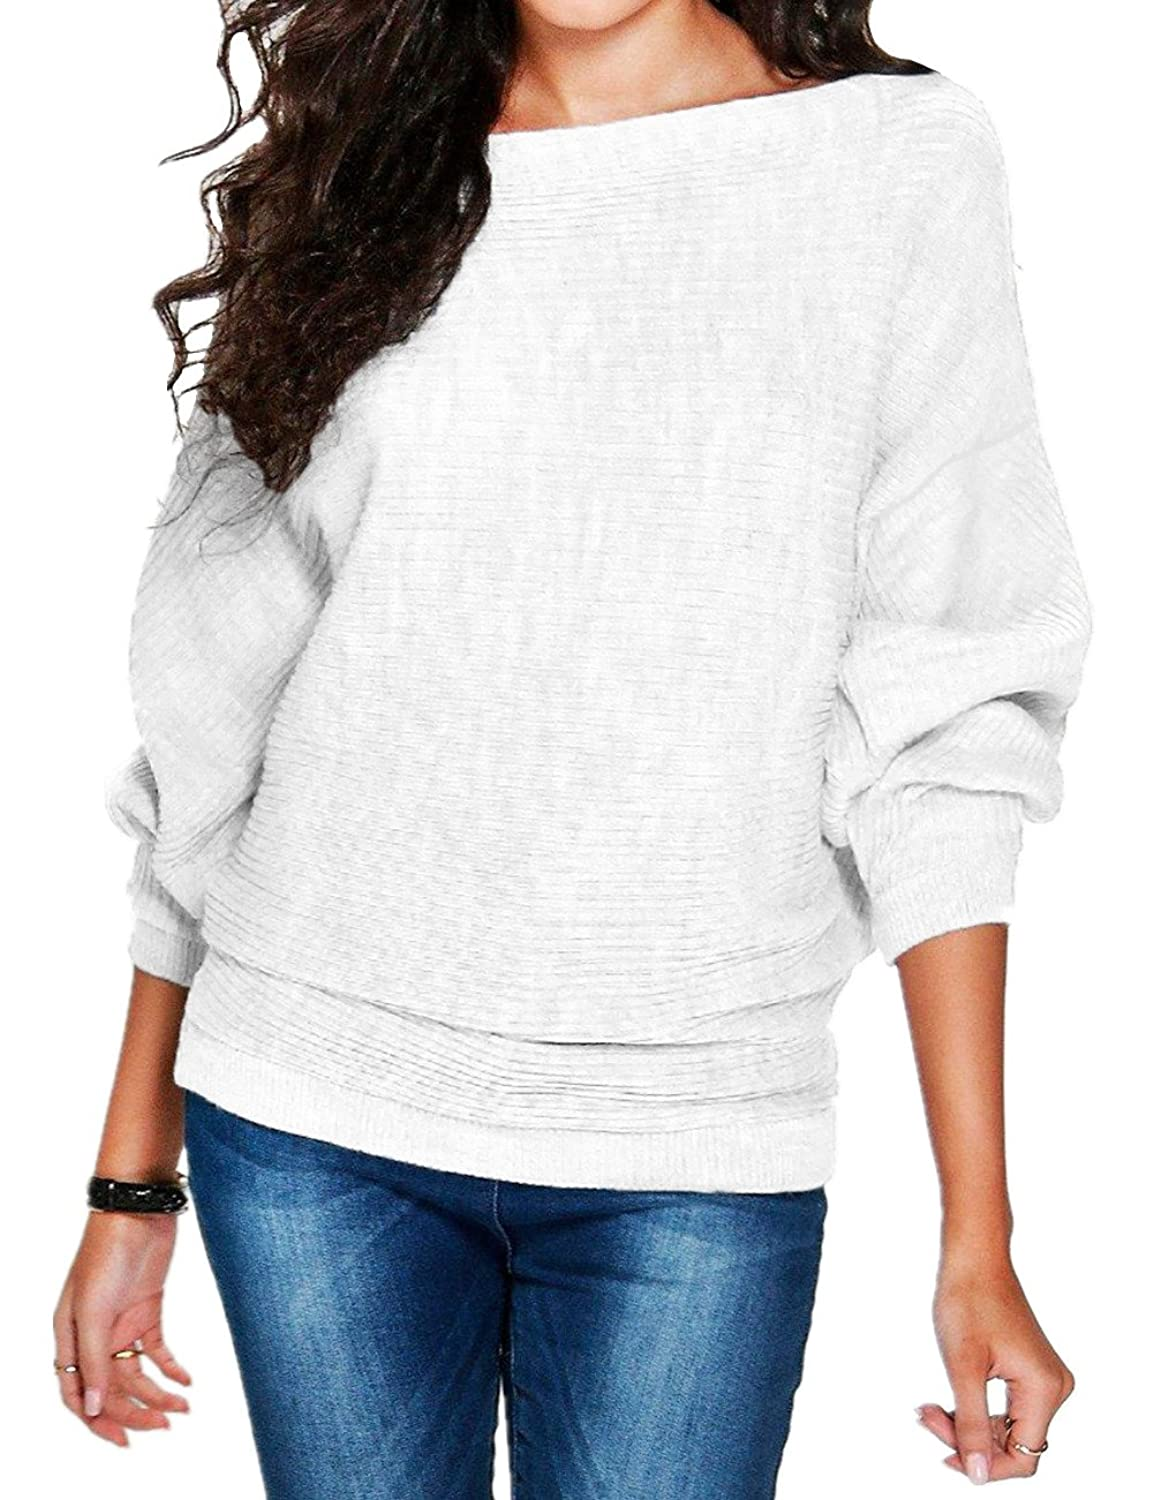 FANOVI Women's Plain Sexy Low Cut V Neck Rib Knitted Casual Loose Jumper Sweater